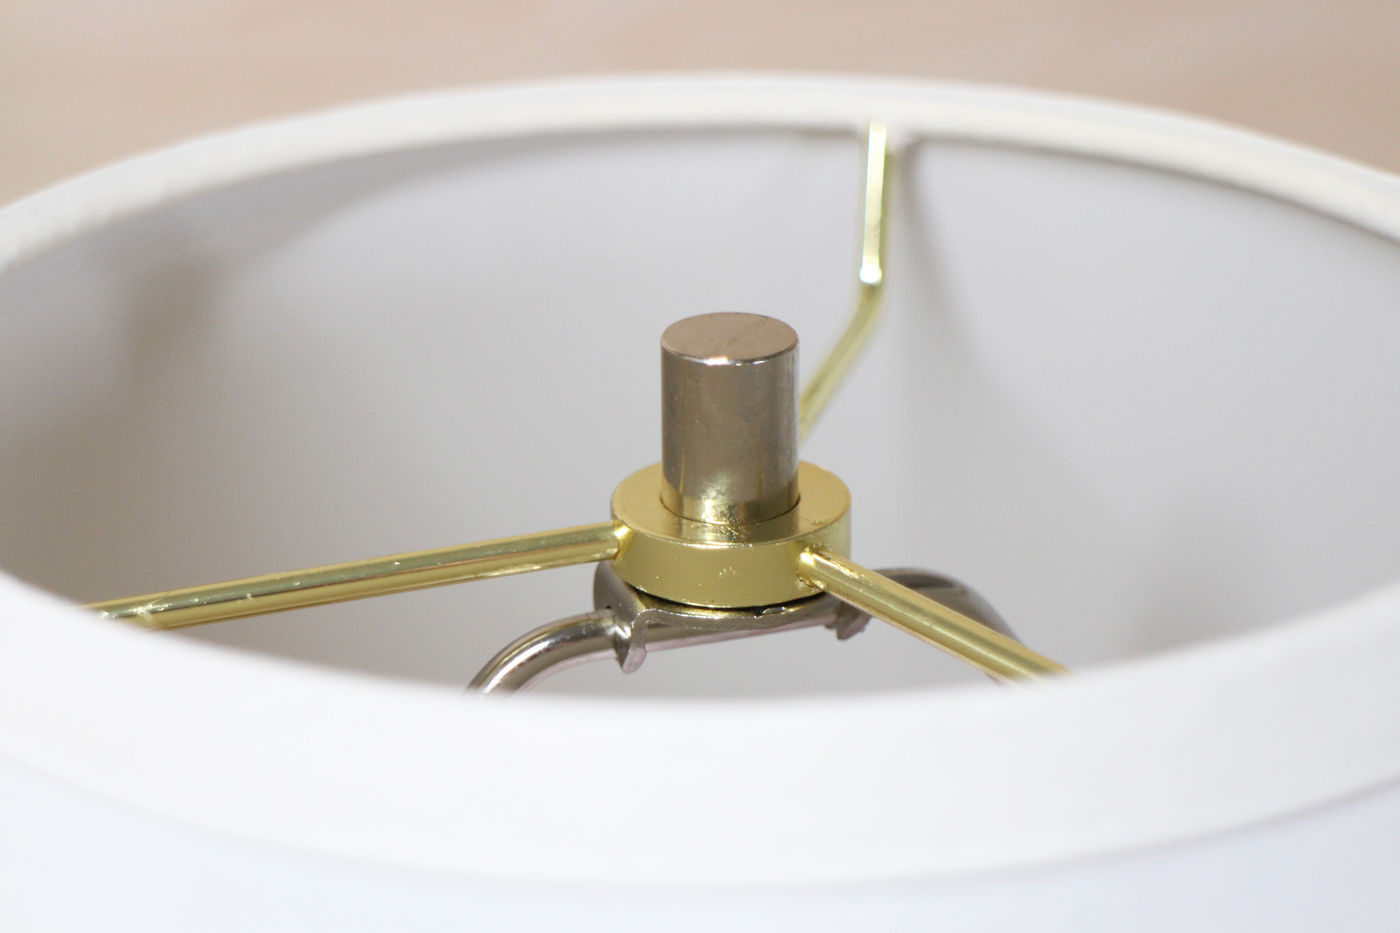 Lampshades: Support Hardware & How to Choose Them